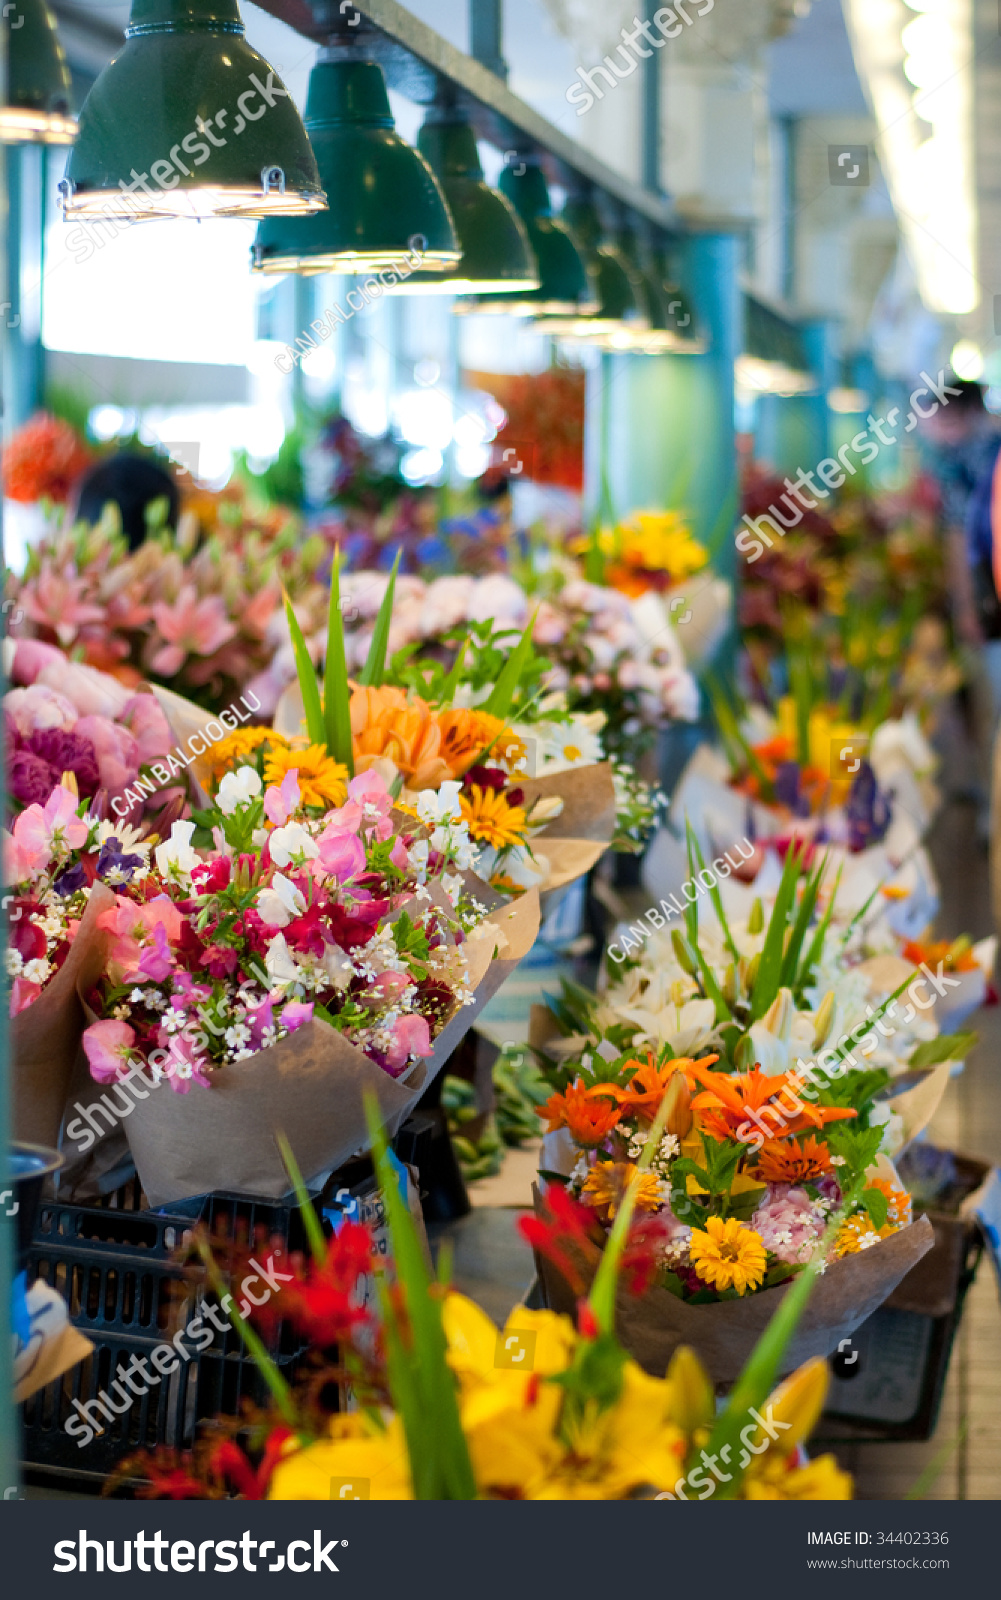 Colorful Flower Bouquets Sale Pike Place Stock Photo (Safe to Use ...